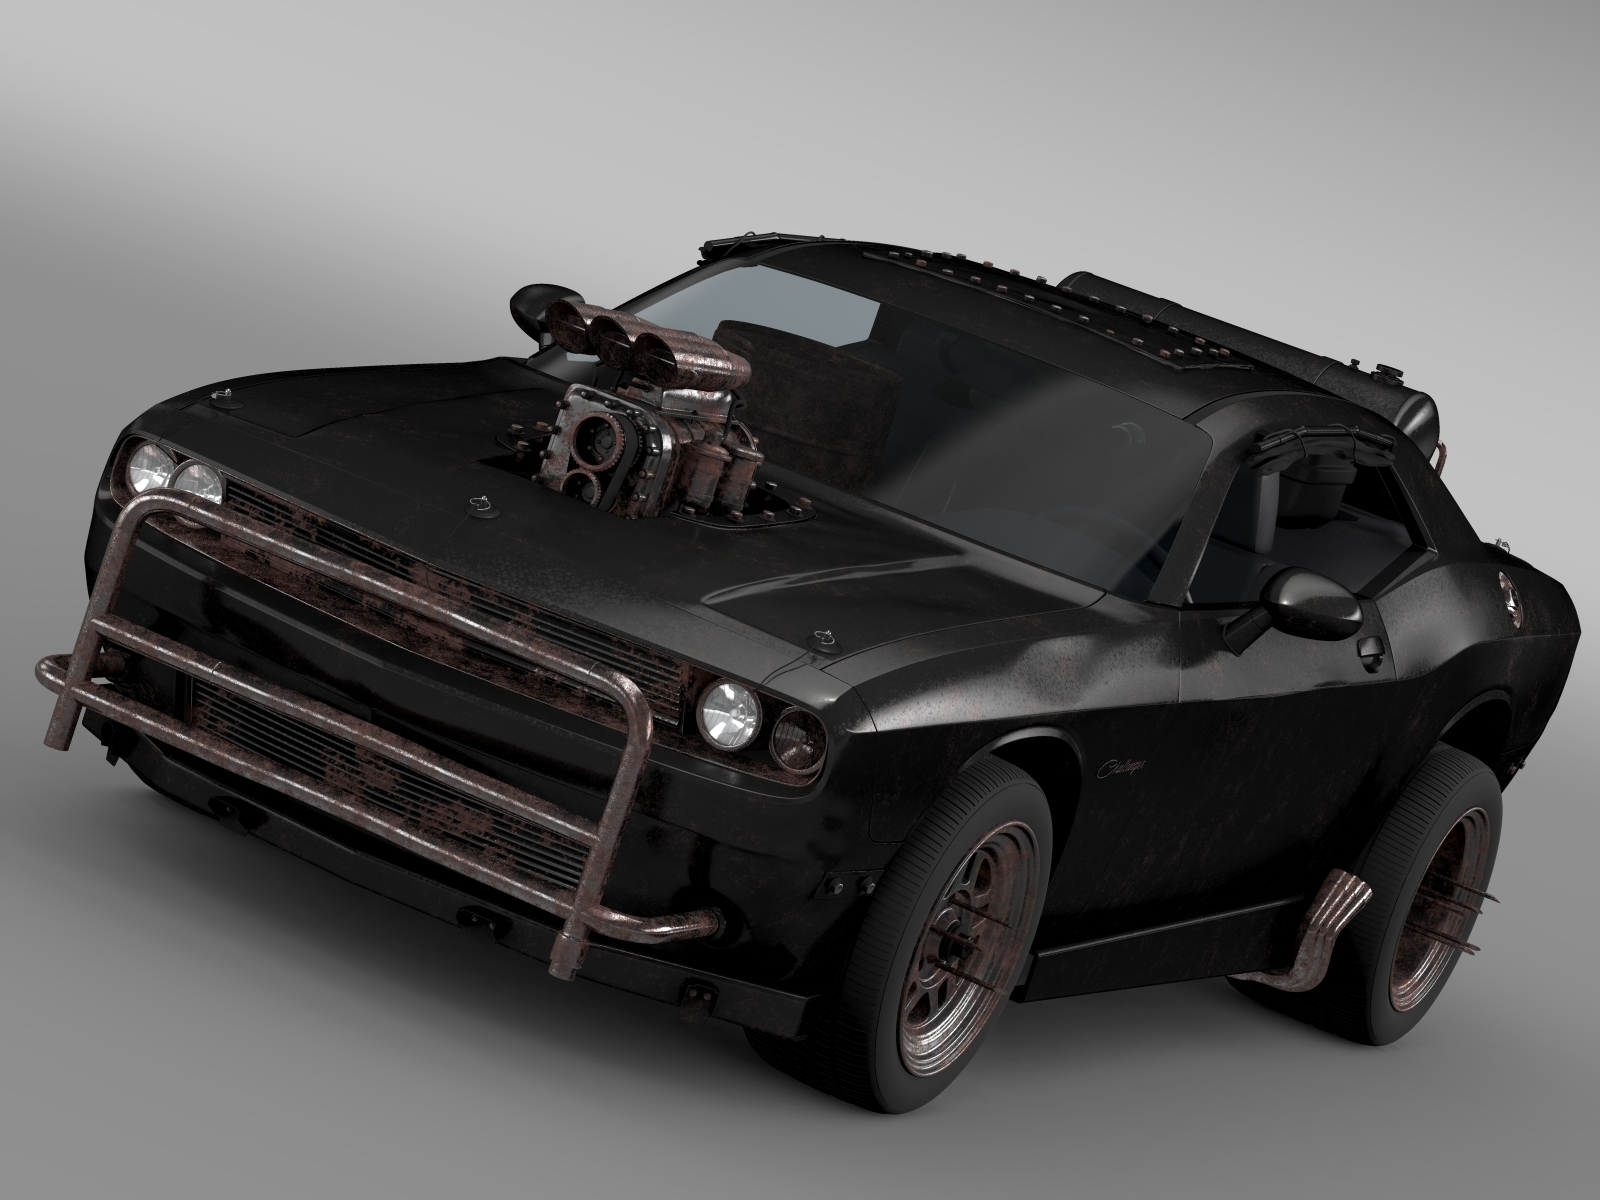 mad max fight interceptor dodge challenger 2015 3d model 3ds fbx c4d lwo ma mb hrc xsi obj 212266